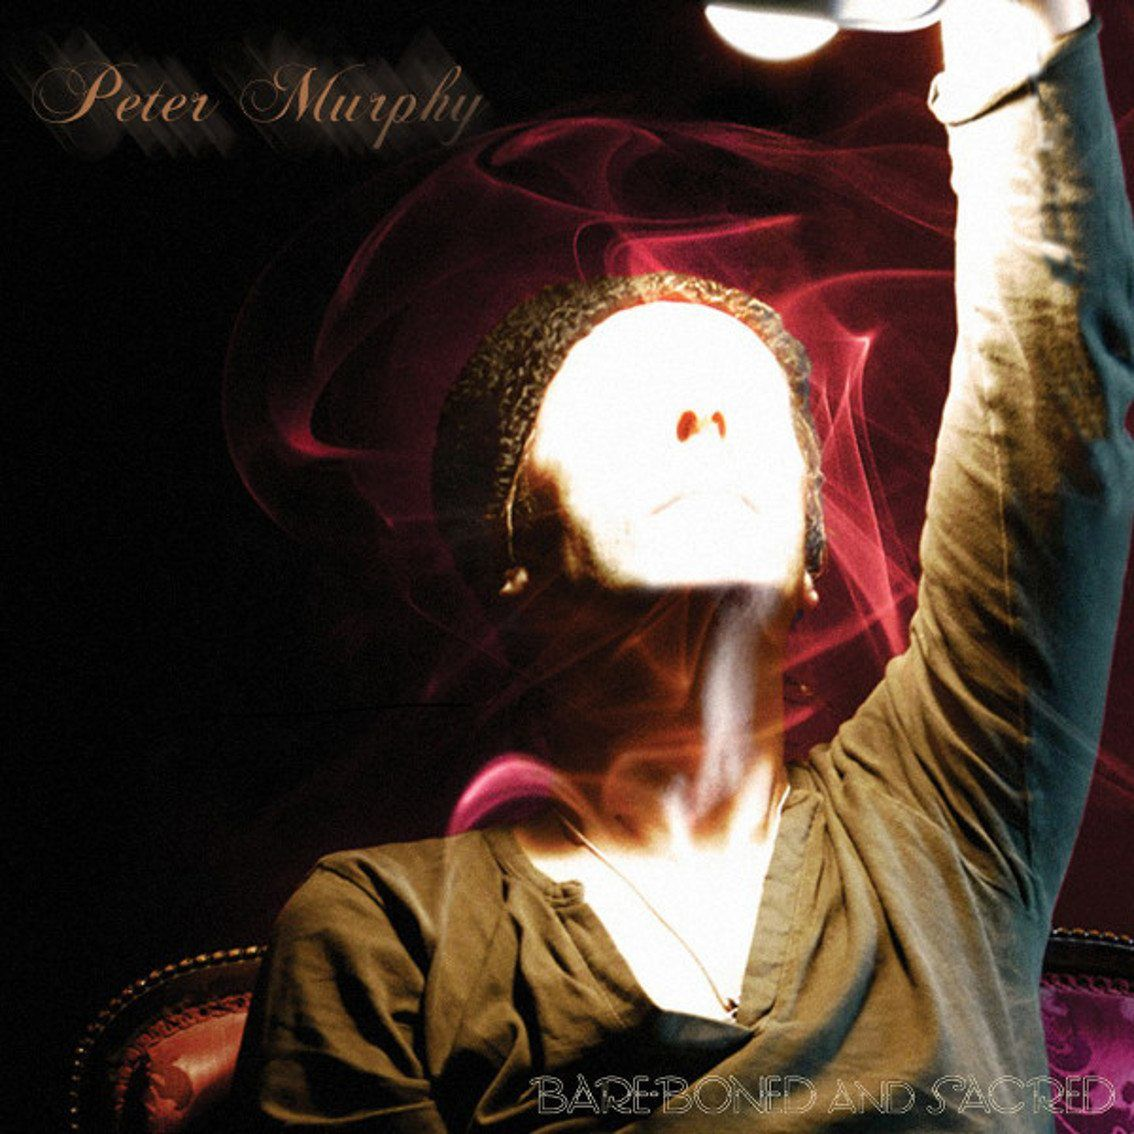 Peter Murphy (Bauhaus) to launch live album 'Bare-Boned and Sacred' in March - pre-orders available here